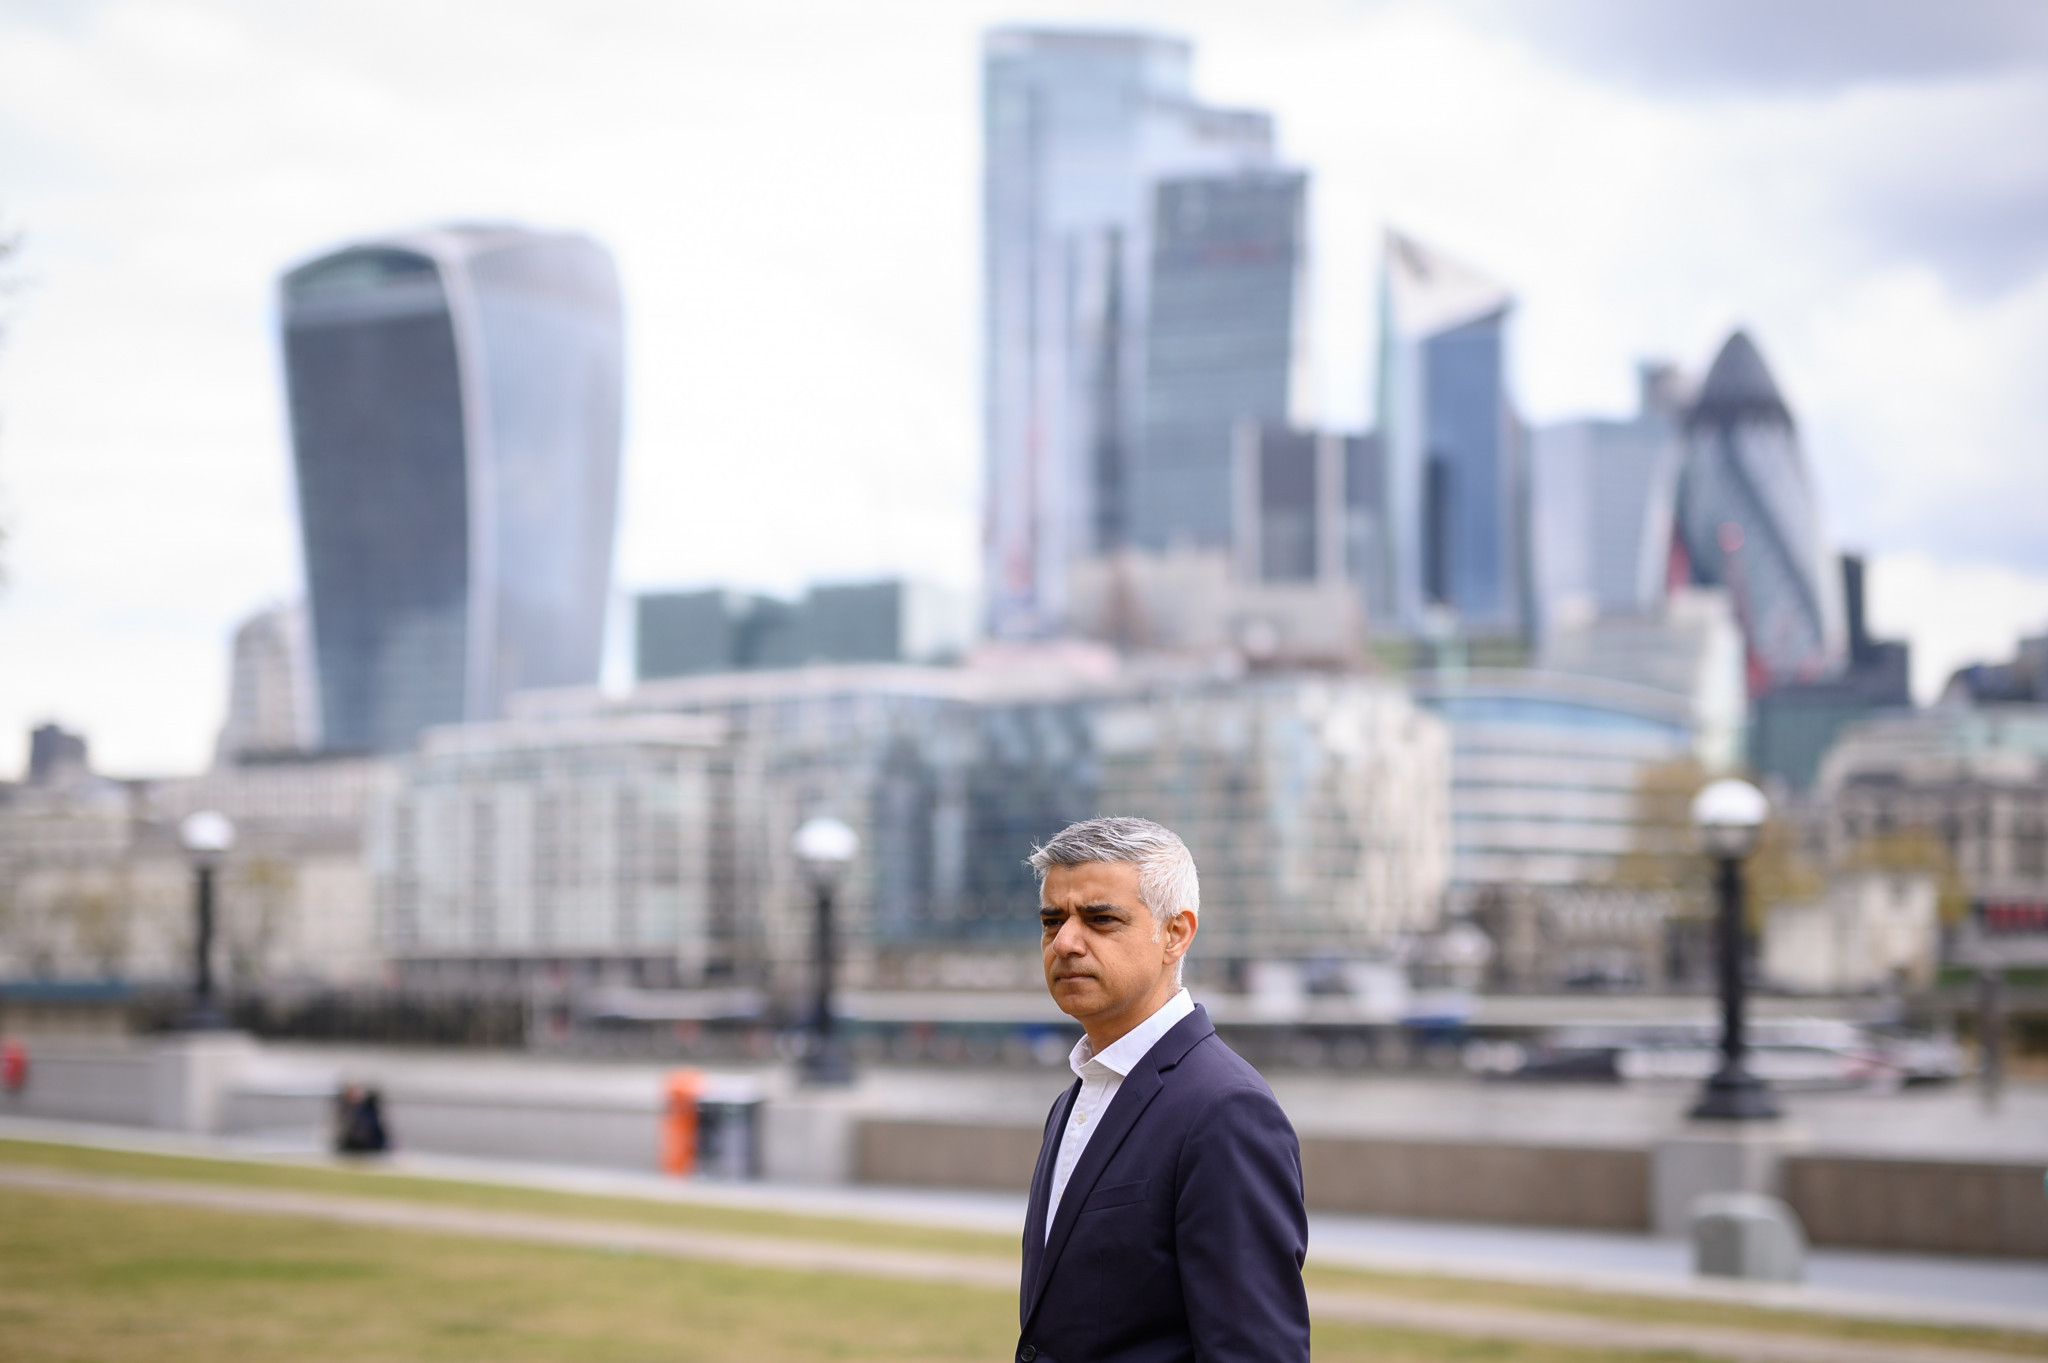 Khan targets 2036 or 2040 Olympic and Paralympic bid if re-elected London Mayor